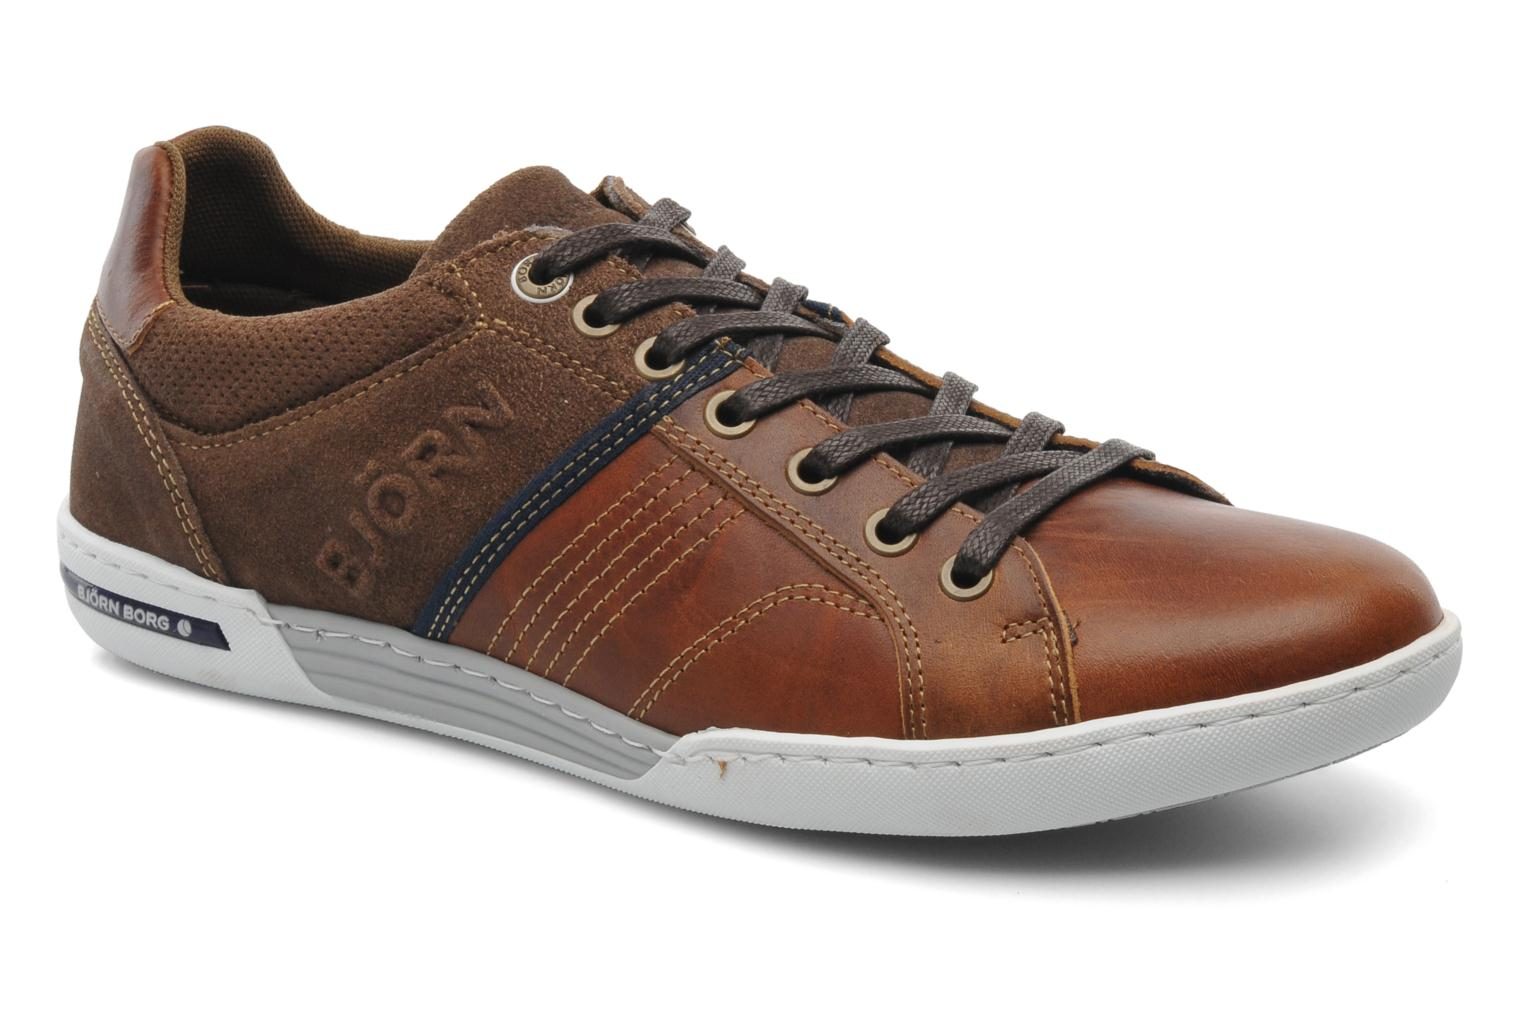 Sneakers ROSCOE CO by Björn Borg